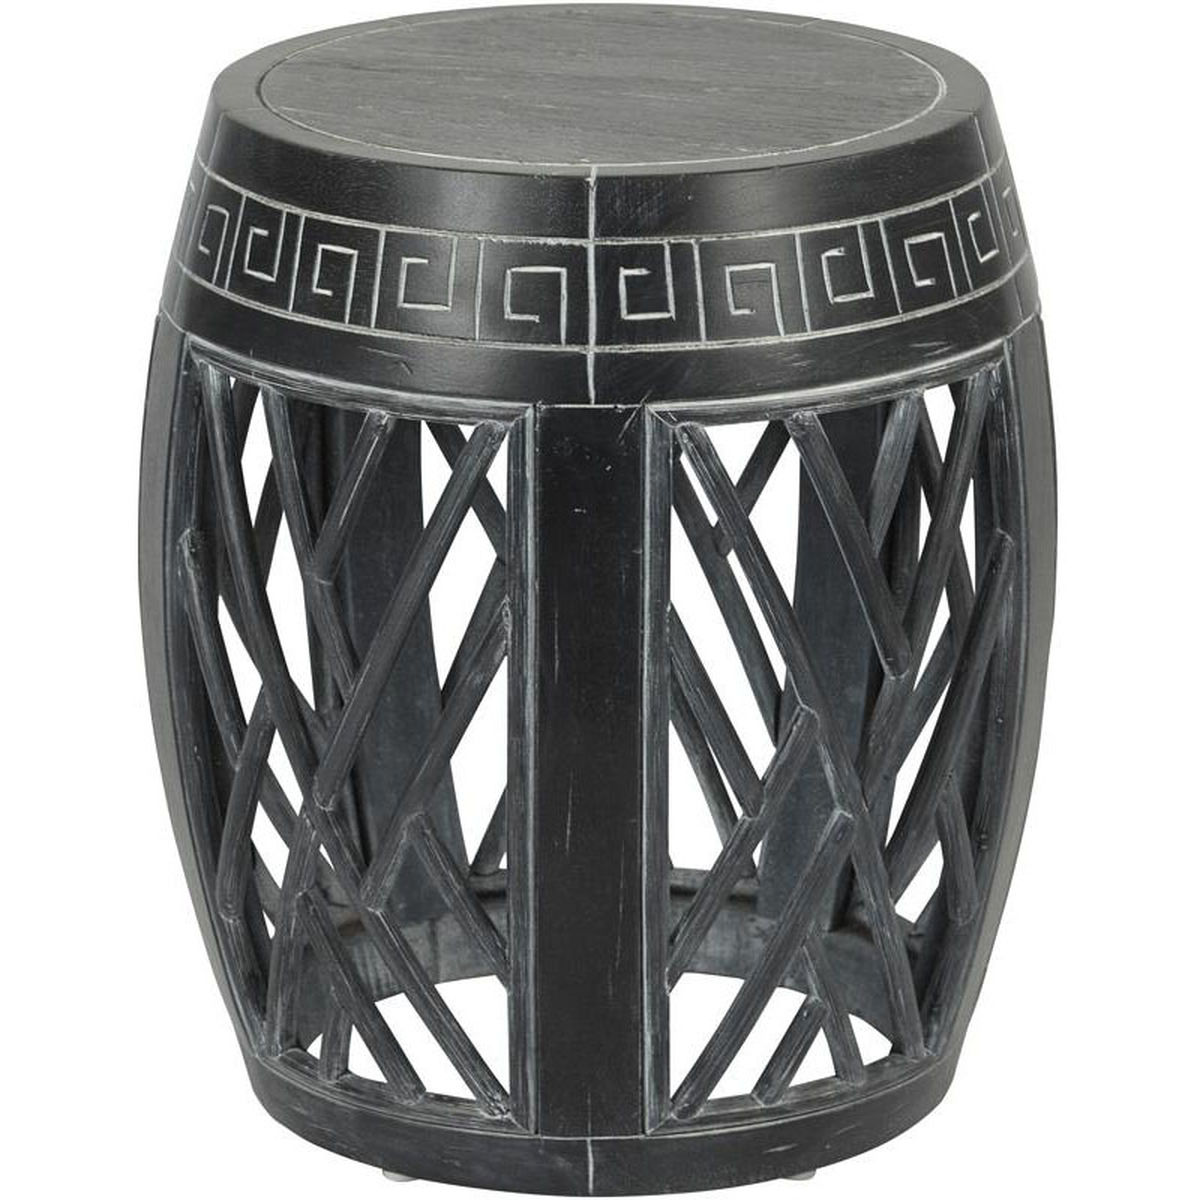 drum black accent table bizchair office star products main antique our osp designs now small white desk end tables under wine cabinet metal stools target round silver coffee